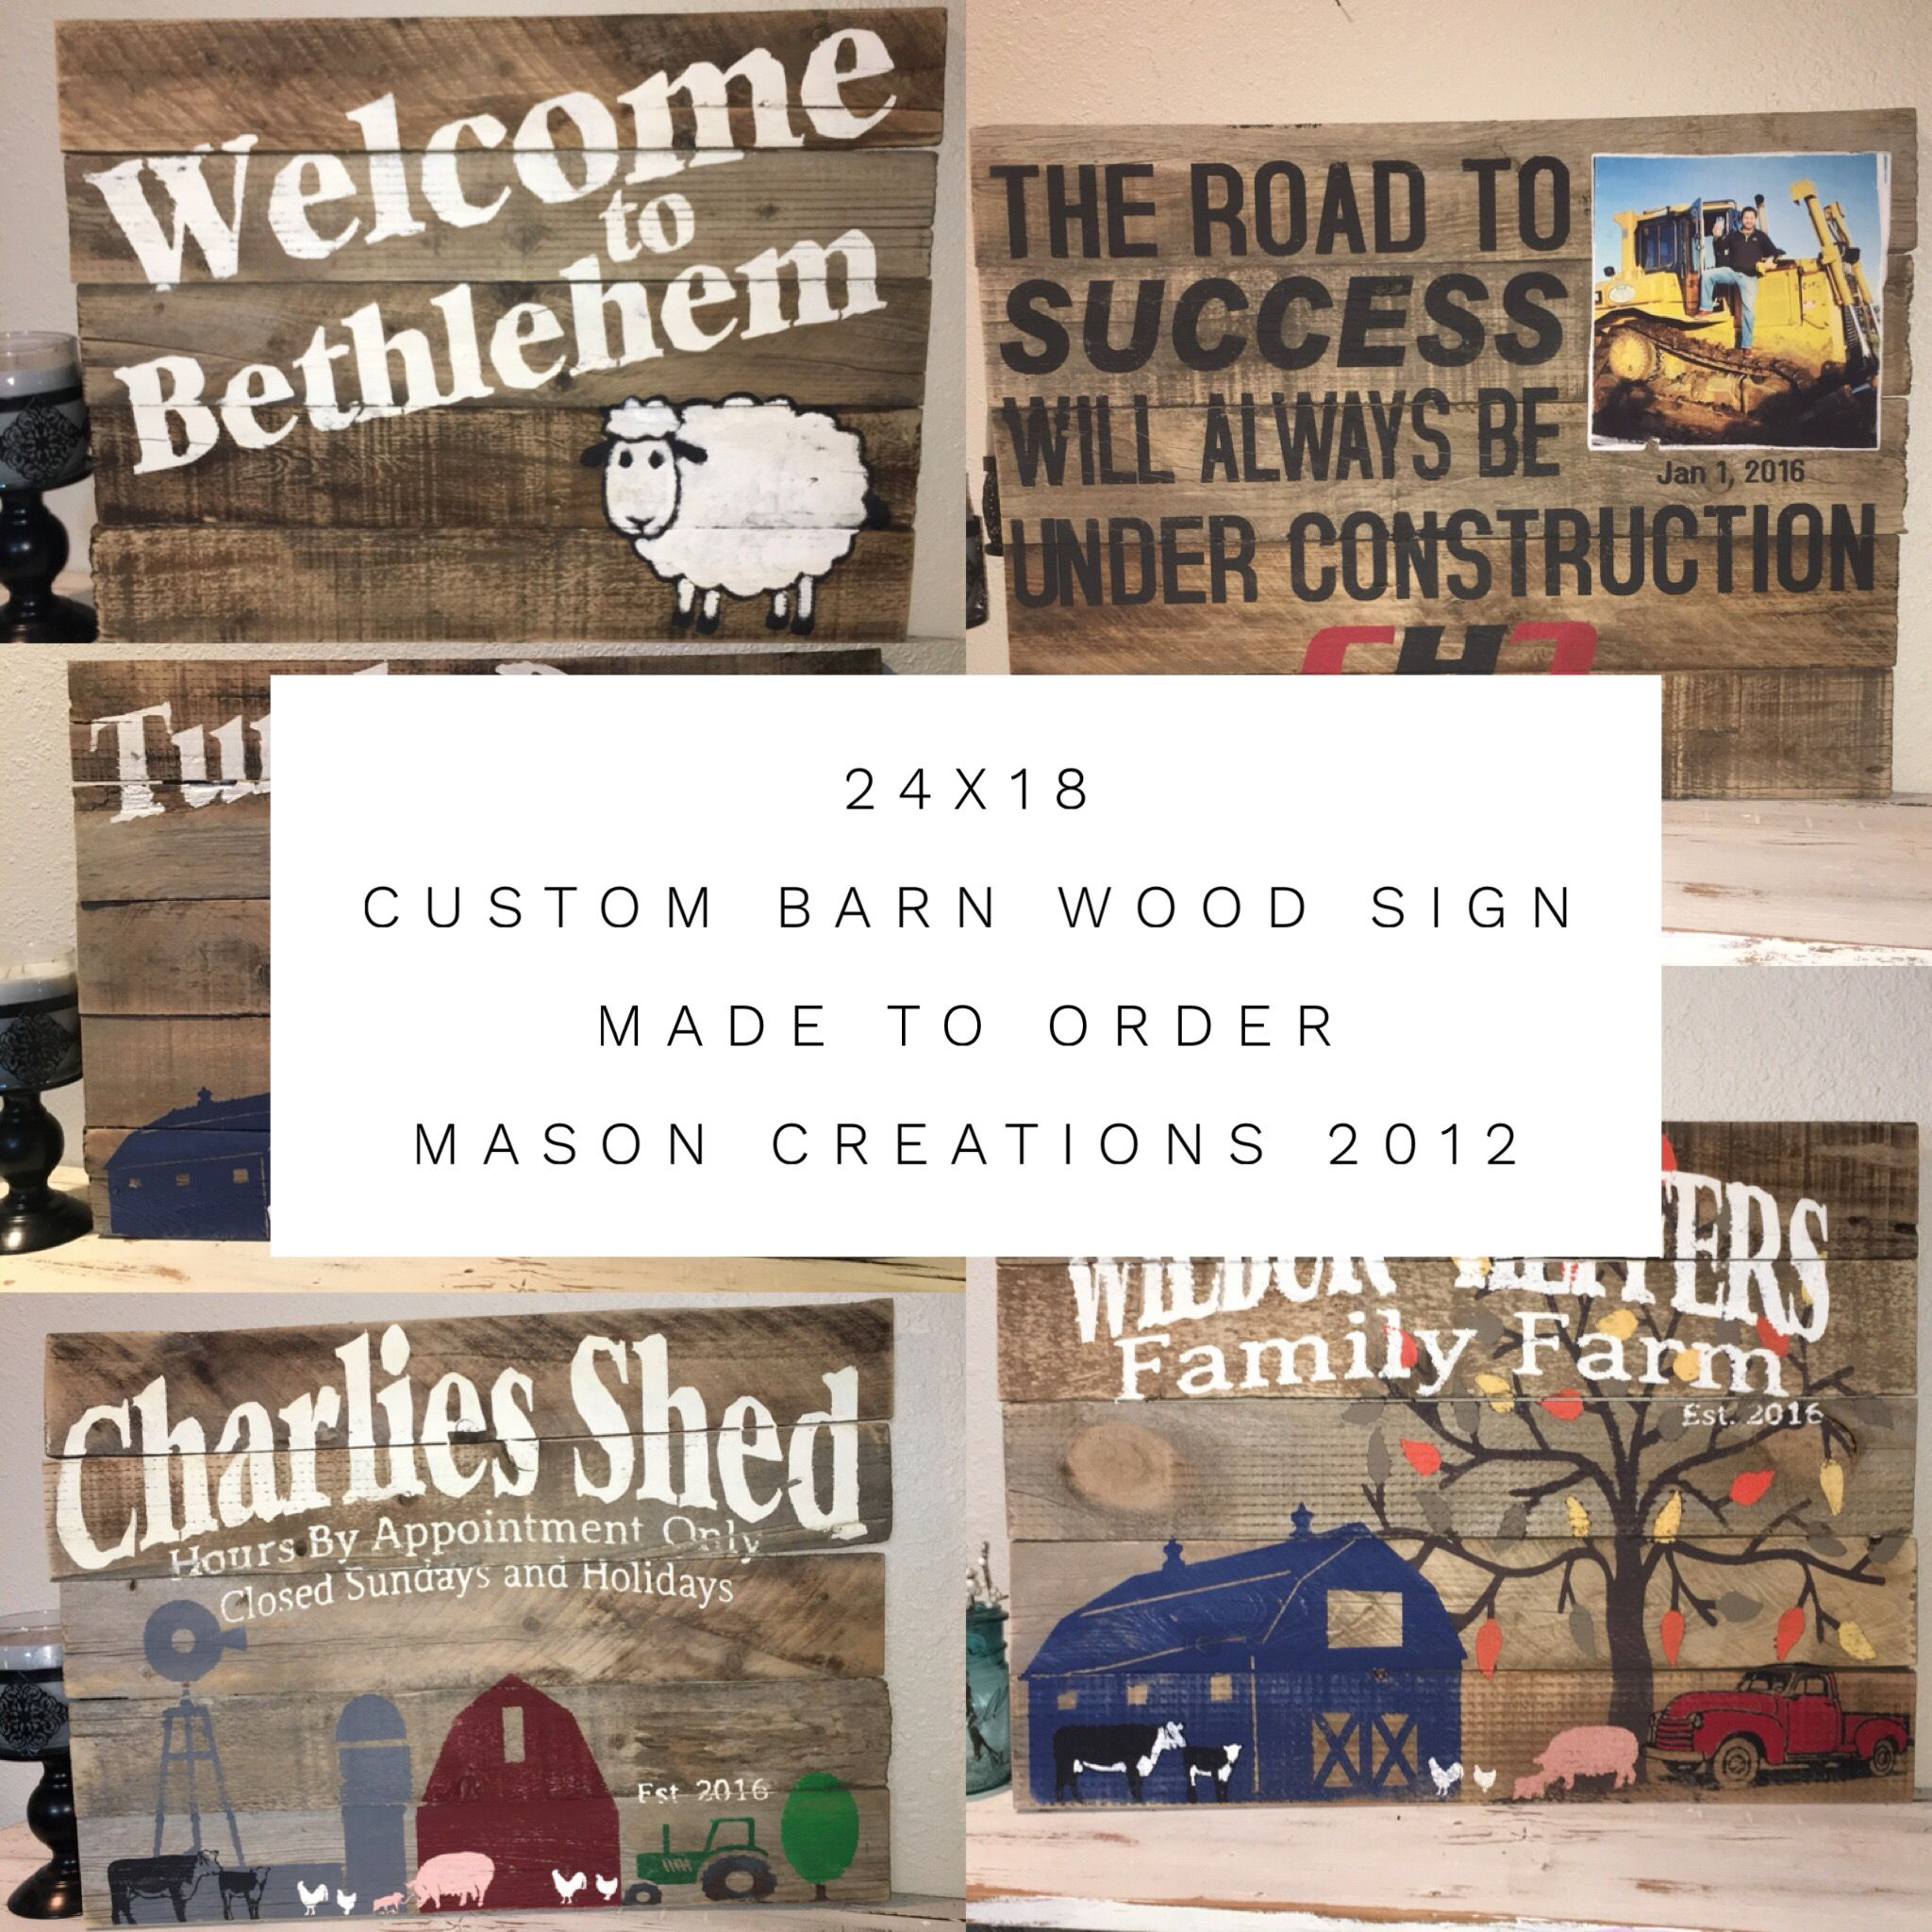 9b0633b2d766a 24x18 Barn Wood Custom Sign